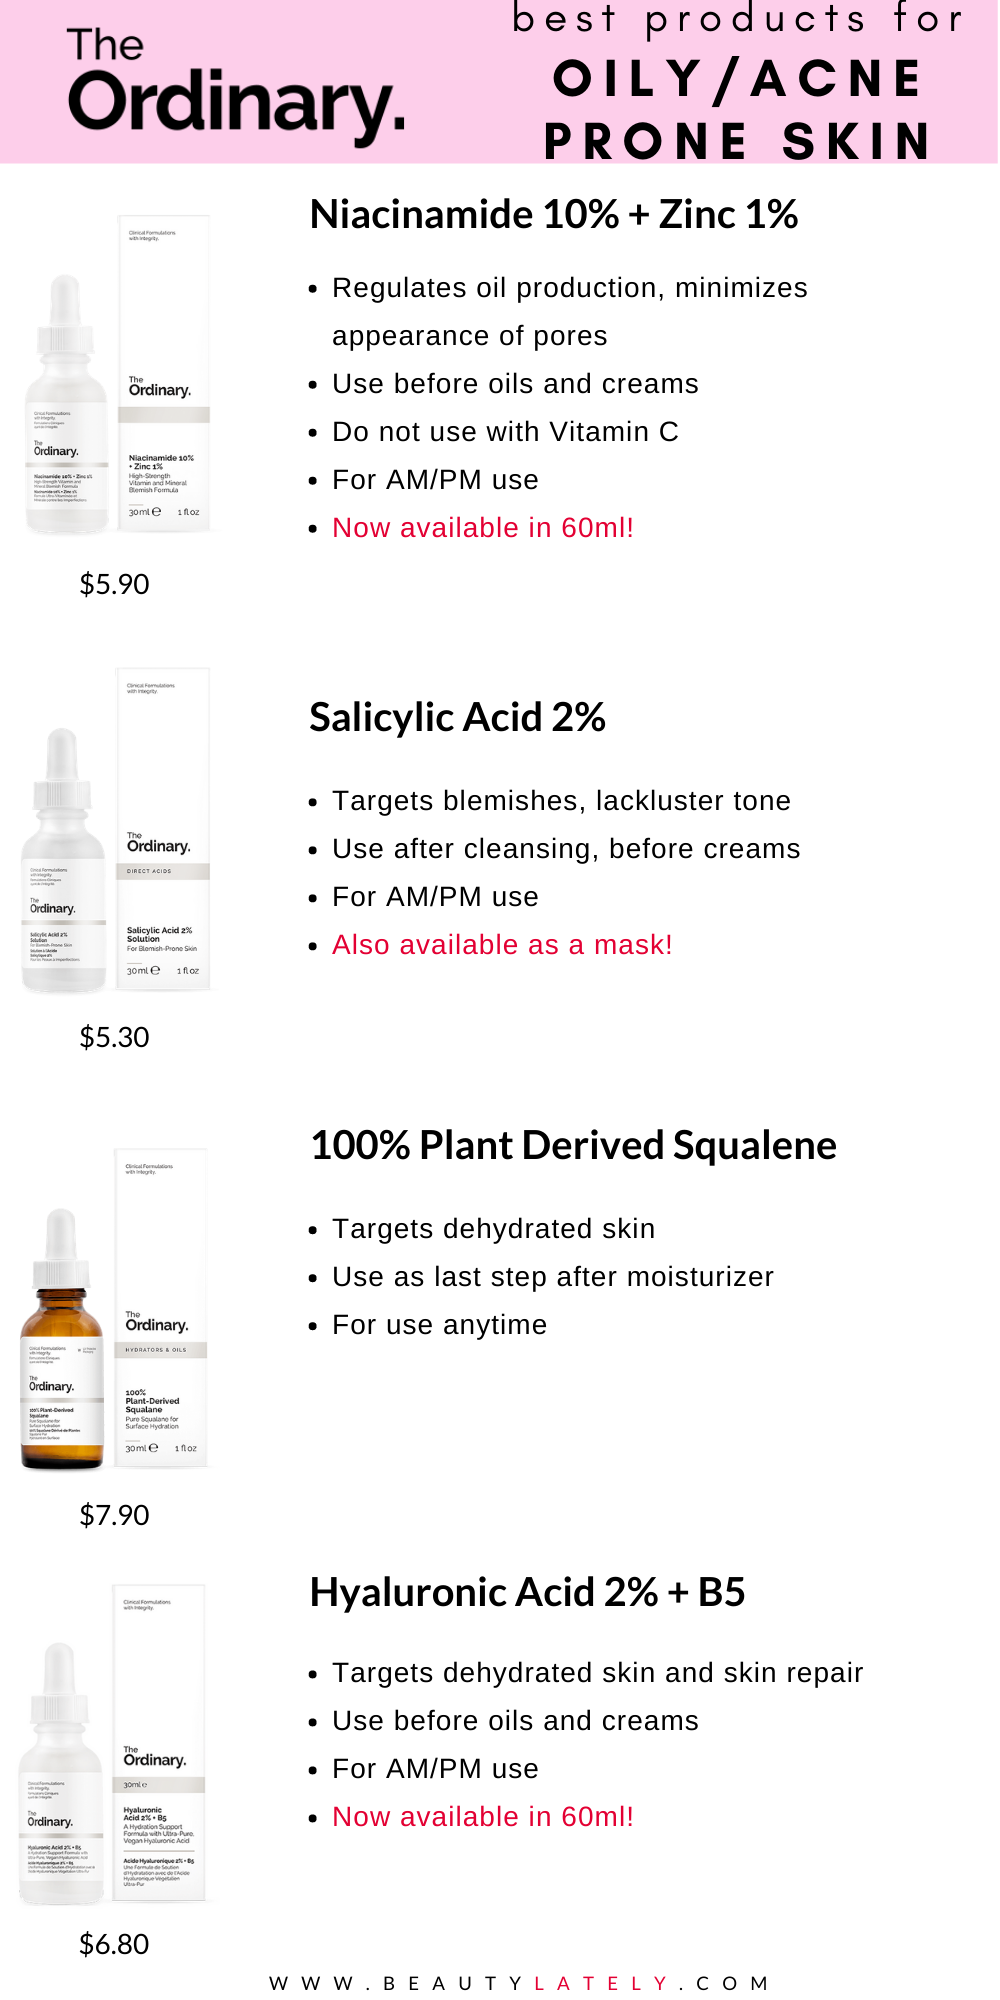 The Ordinary Skincare Guide To Oily Acne Prone Skin Effective Skin Care Products Skin Care Acne Oily Skin Care